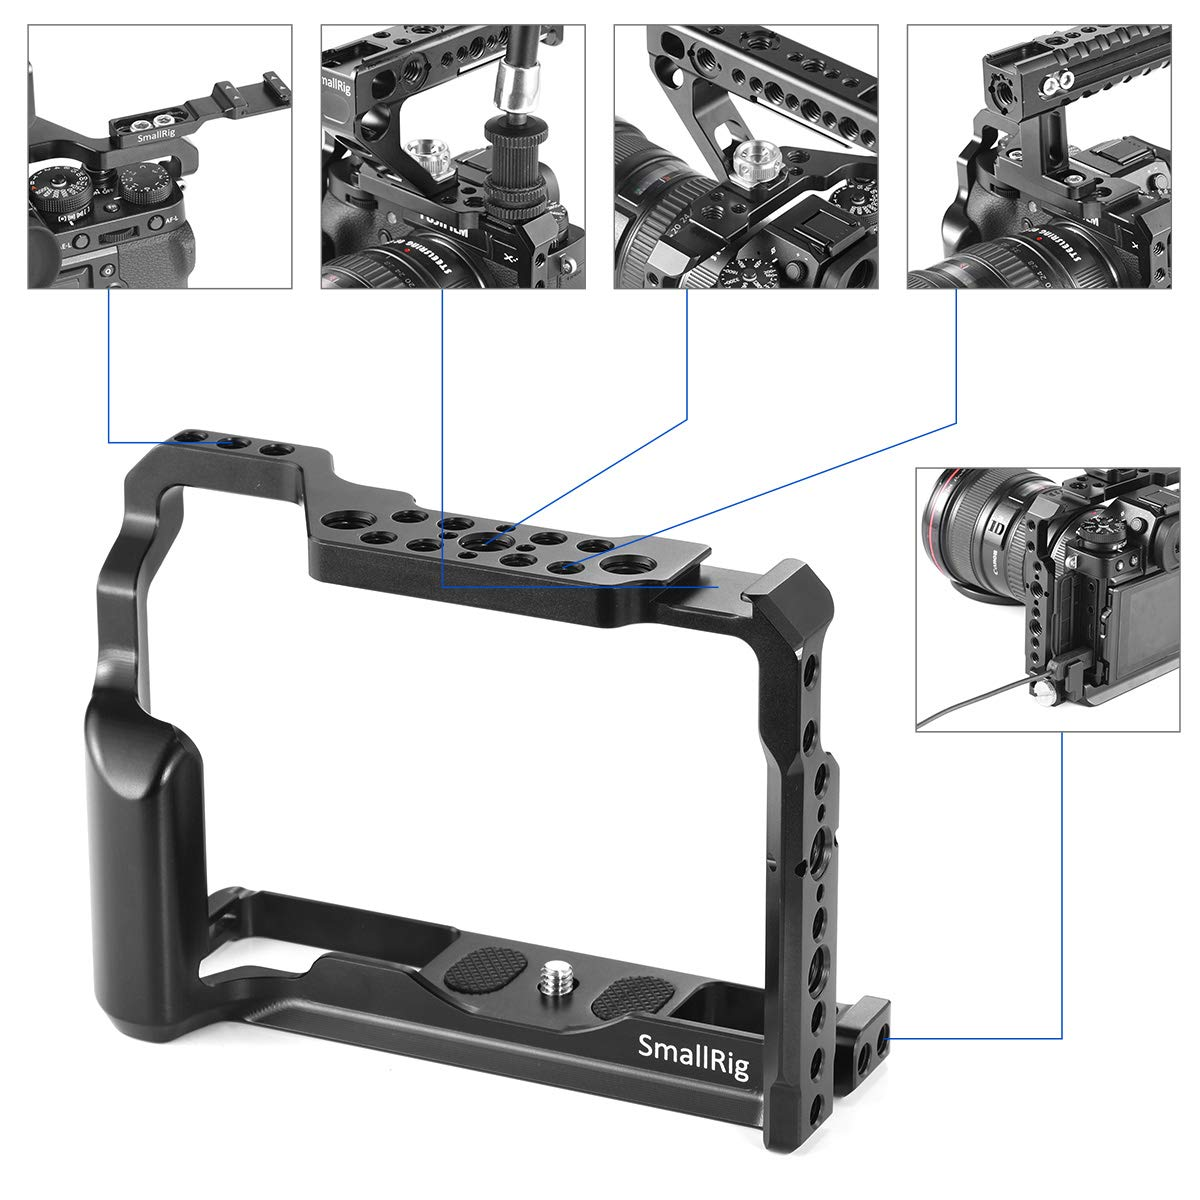 SMALLRIG Camera Cage for Fujifilm X-T3, Aluminum Alloy Cage with Cold Shoe, NATO Rail, Threaded Holes for Arri 3/8'',1/4''-20,3/8''-16 (2228) by SMALLRIG (Image #5)